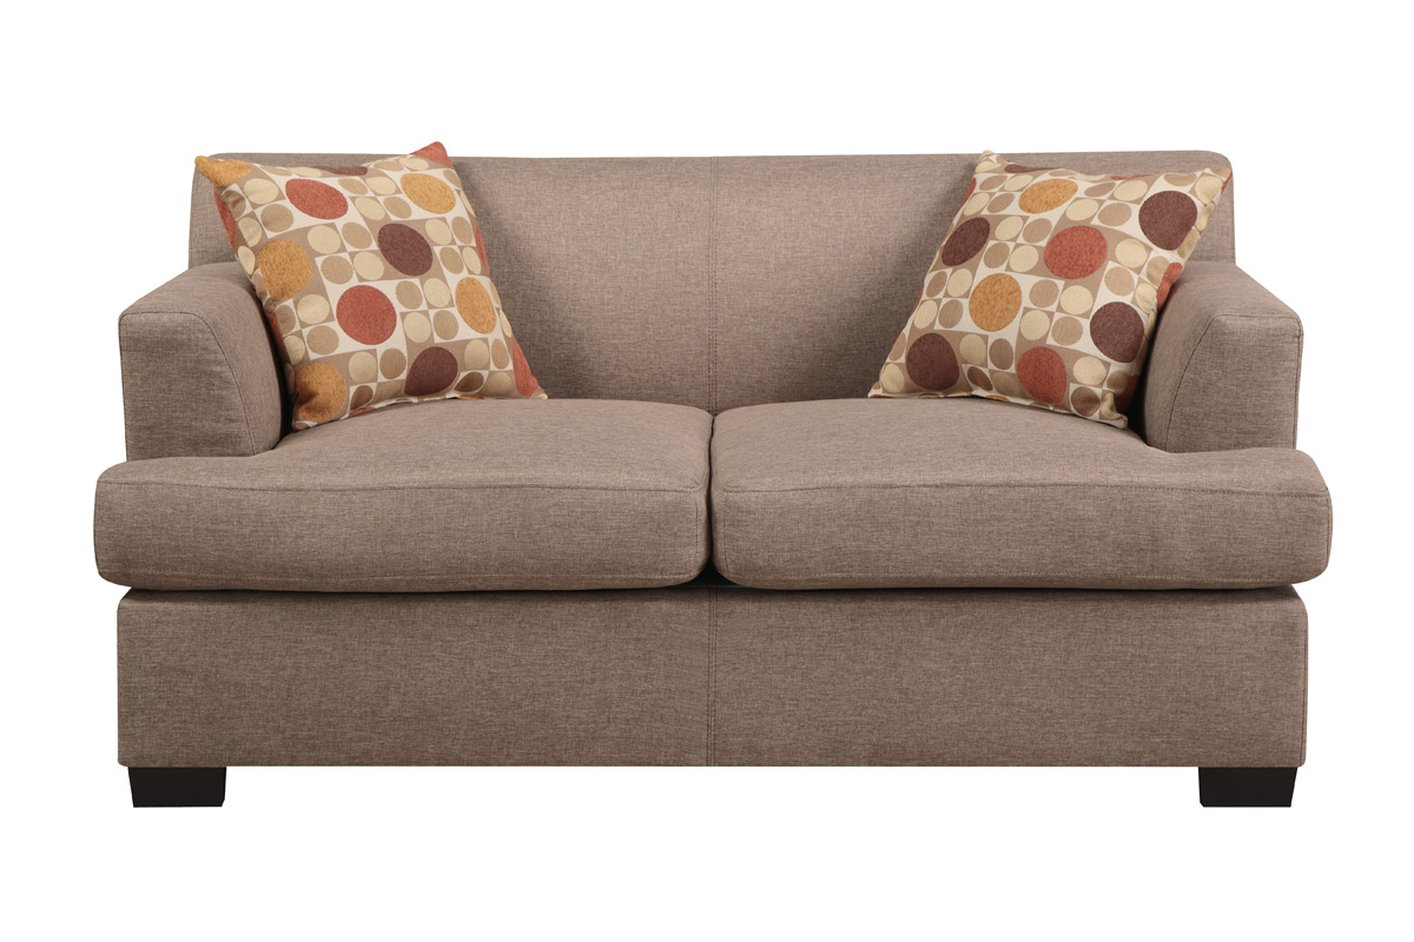 Poundex montreal v f7967 beige fabric loveseat steal a sofa furniture outlet los angeles ca Sofa loveseat